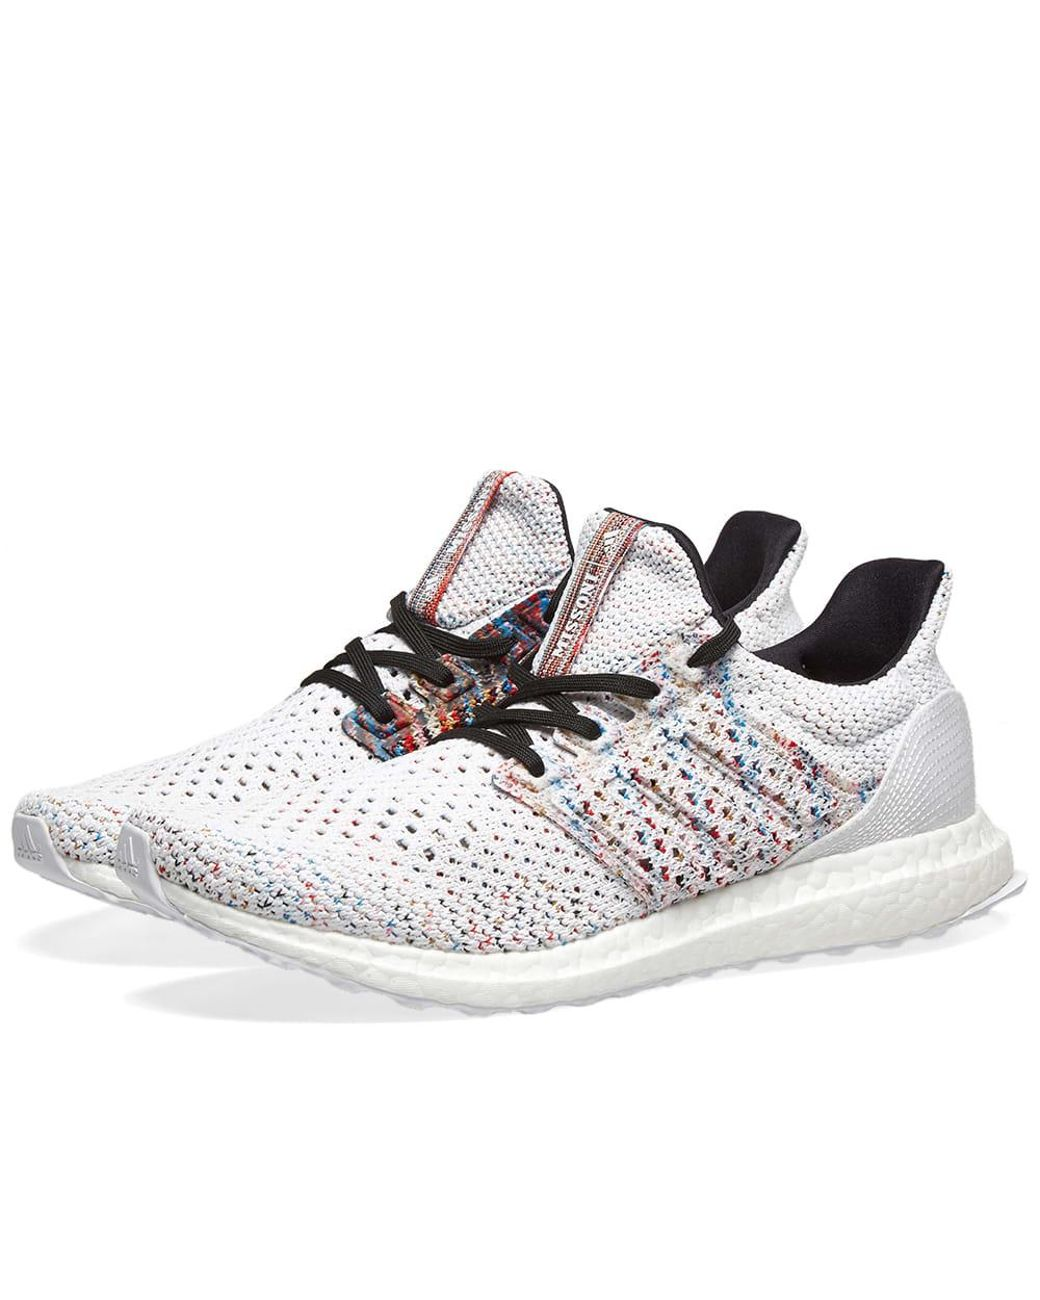 54200ba6e44d8 Lyst - adidas X Missoni Ultra Boost Clima in White for Men